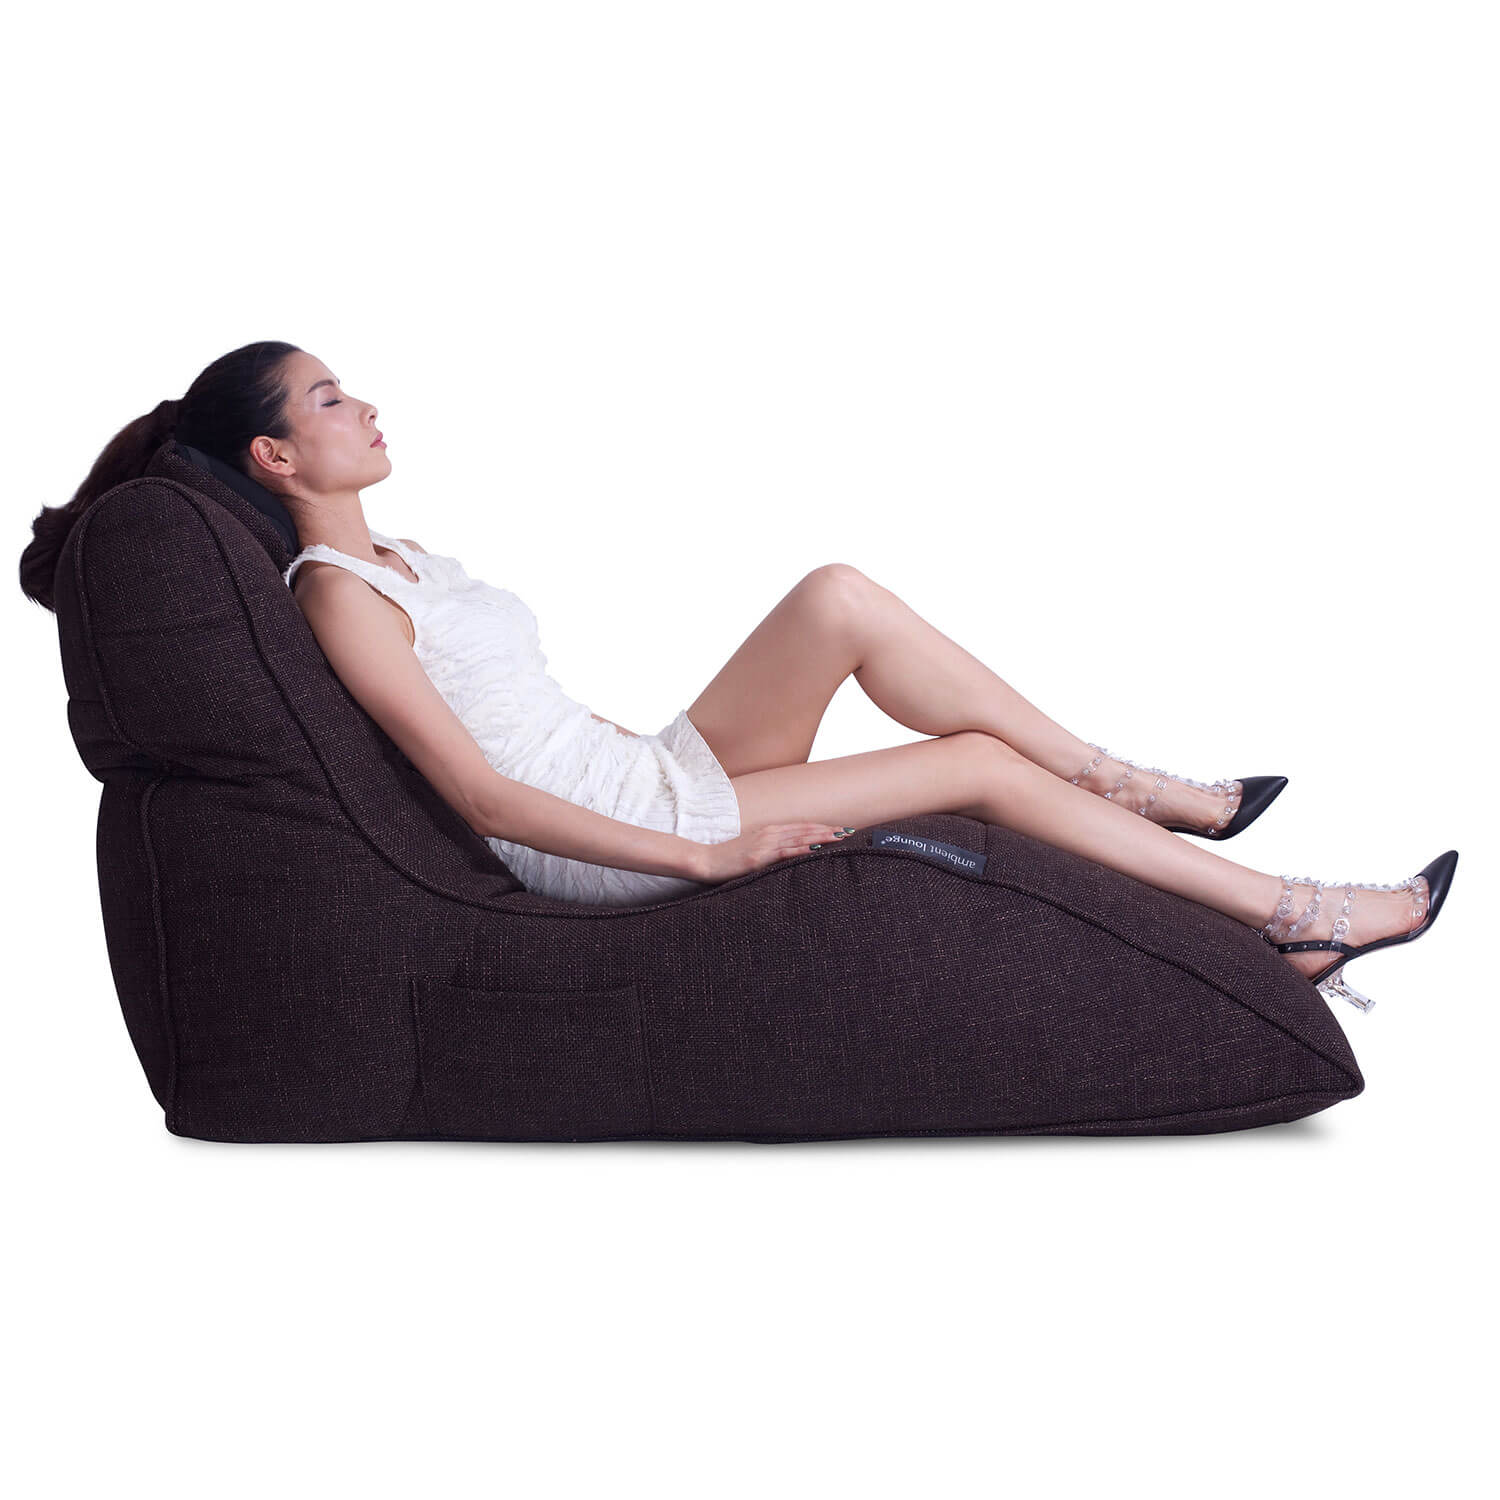 Sexy bean bag chair, naked women with sexy legs and feet